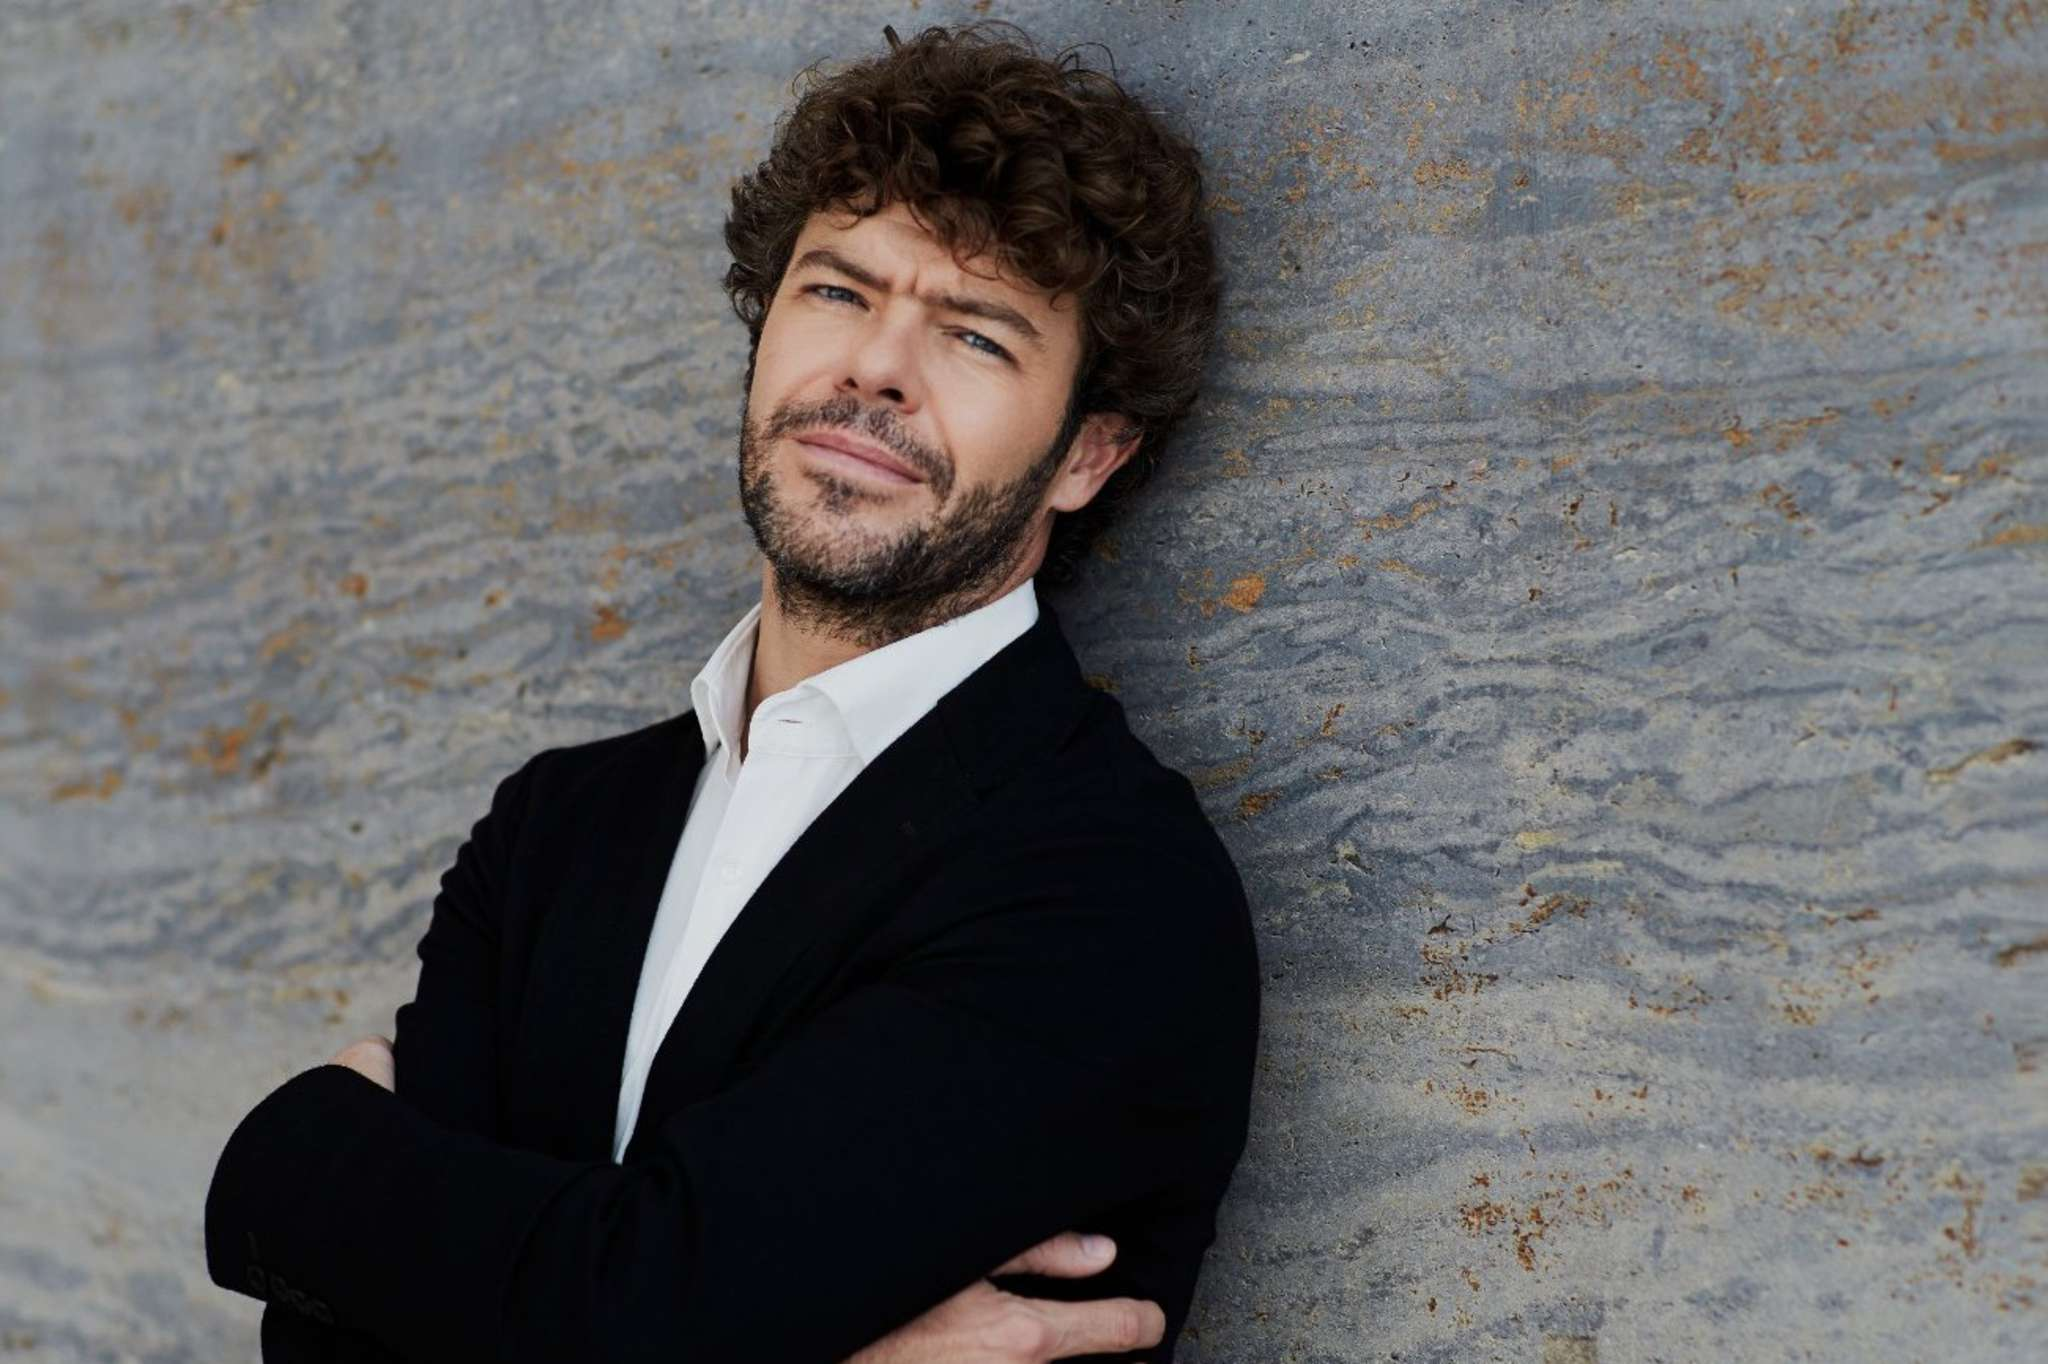 Pablo Heras-Casado conducted the Phildelphia Orchestra for the first time Thursday night.